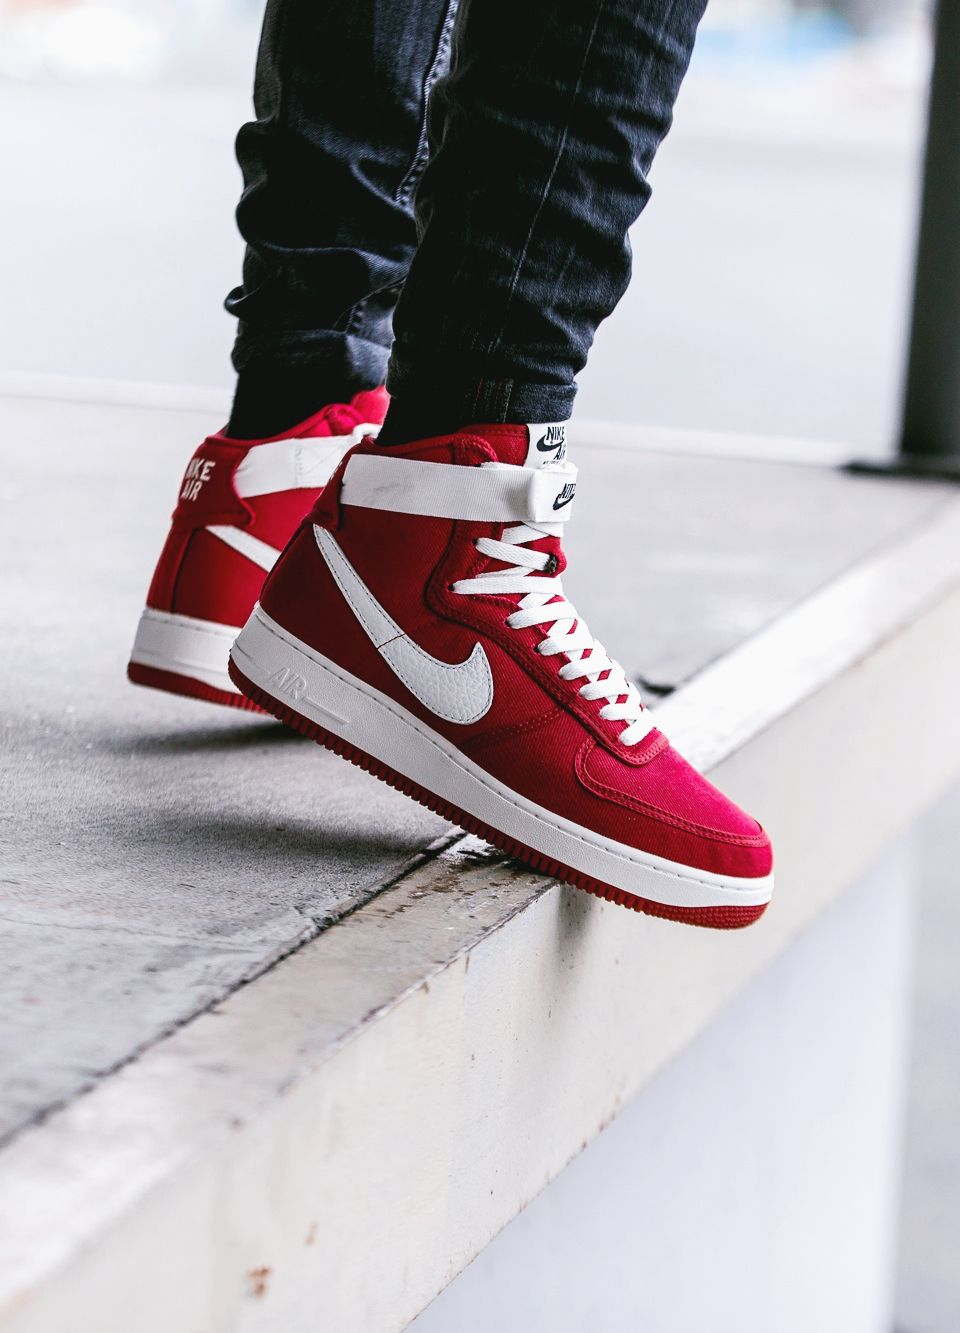 innovative design e738f 5cb42 Nike Air Force 1 High Retro Gym Red sneakers sneakernews